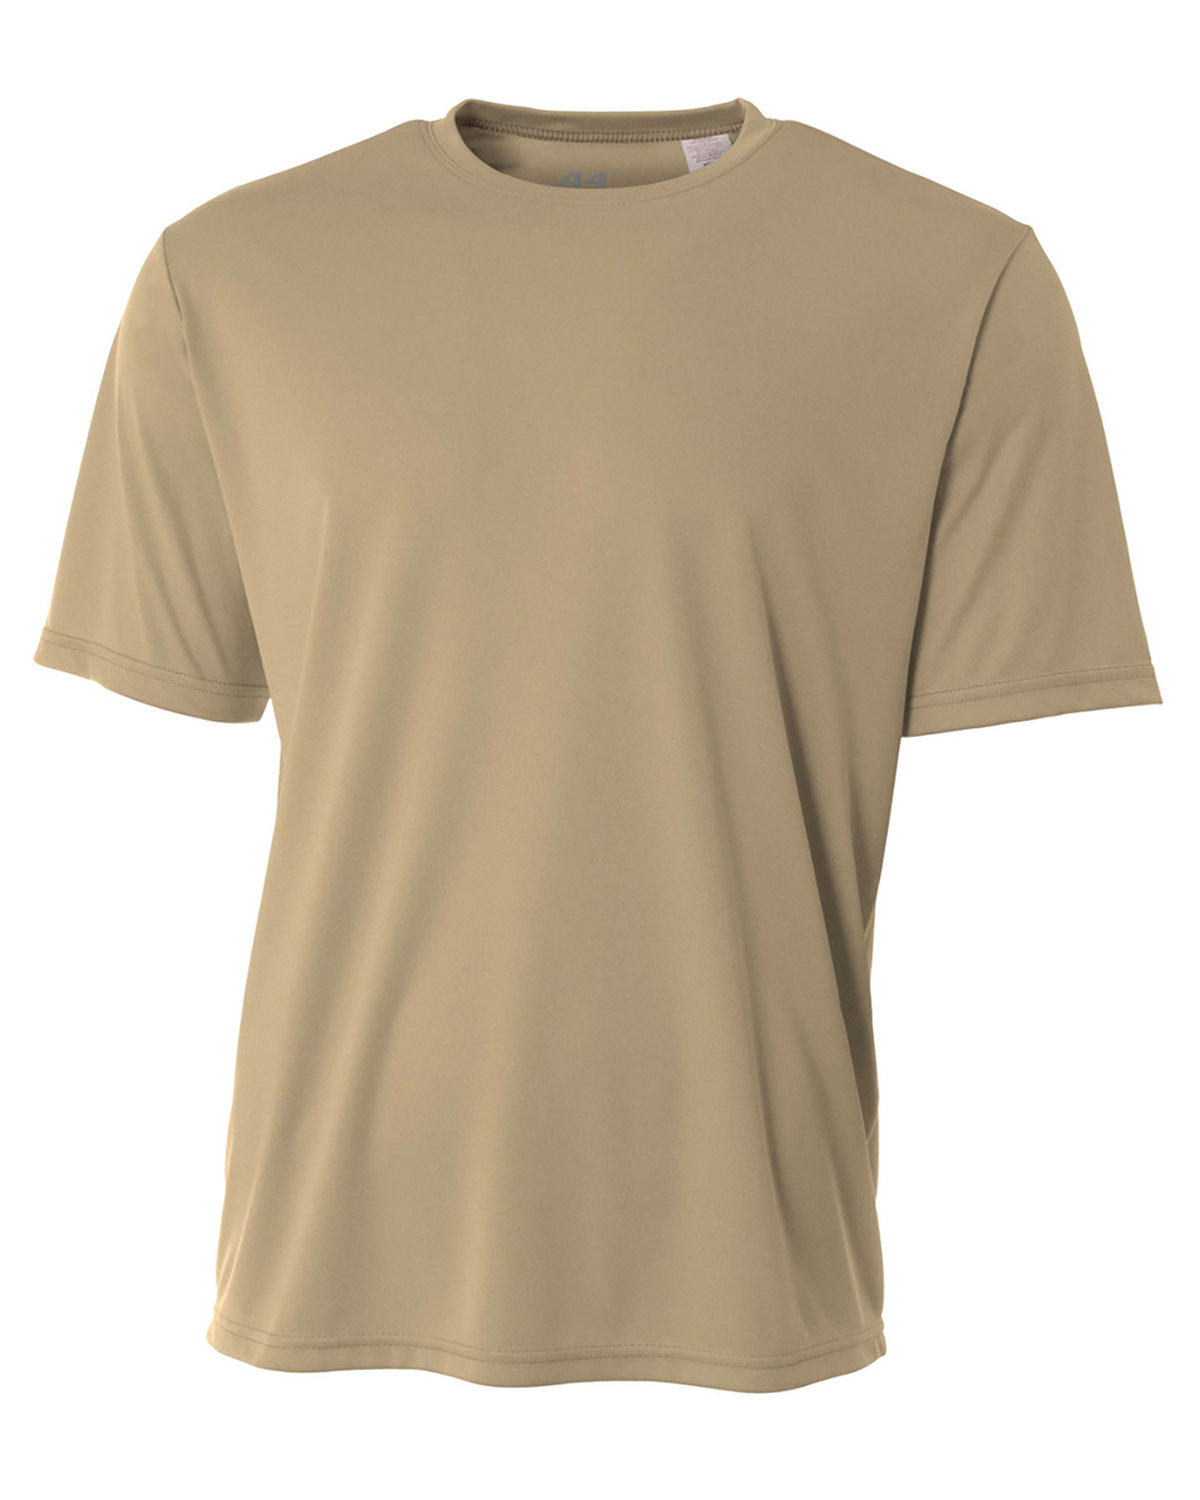 A4 Youth Cooling Performance T-Shirt SAND